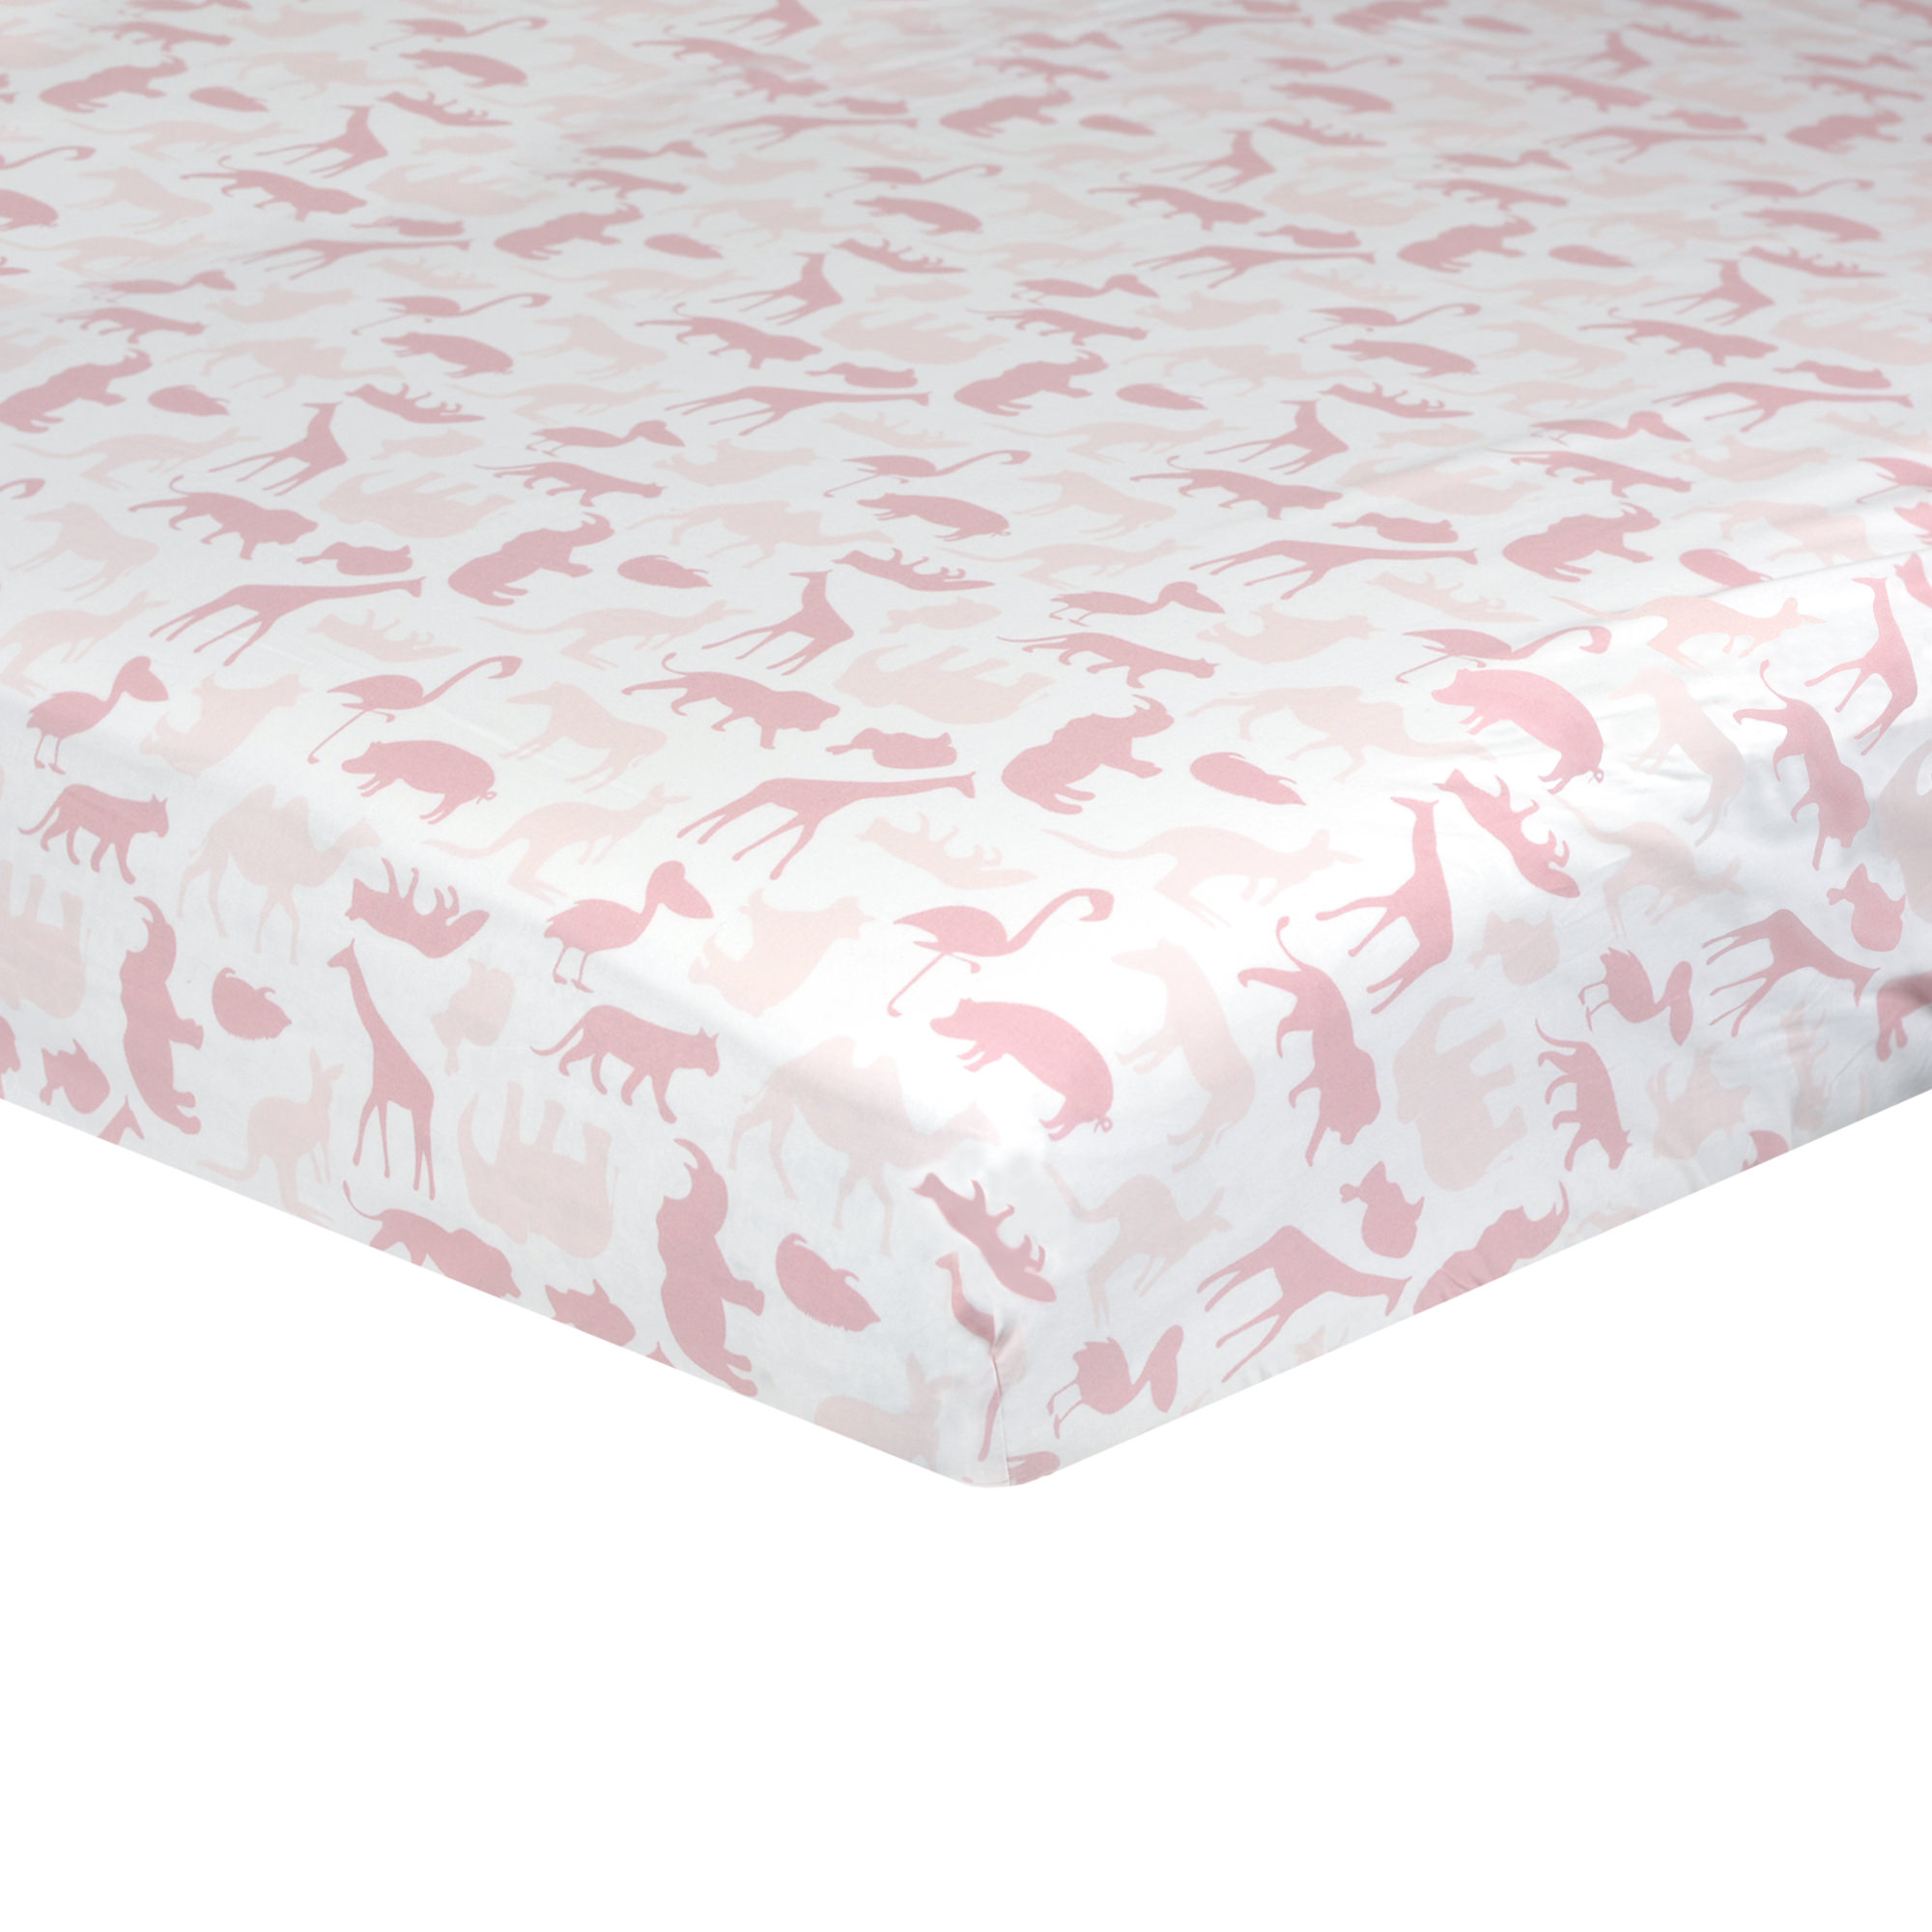 Just Born Dream Fitted Crib Sheet, Pink Jungle